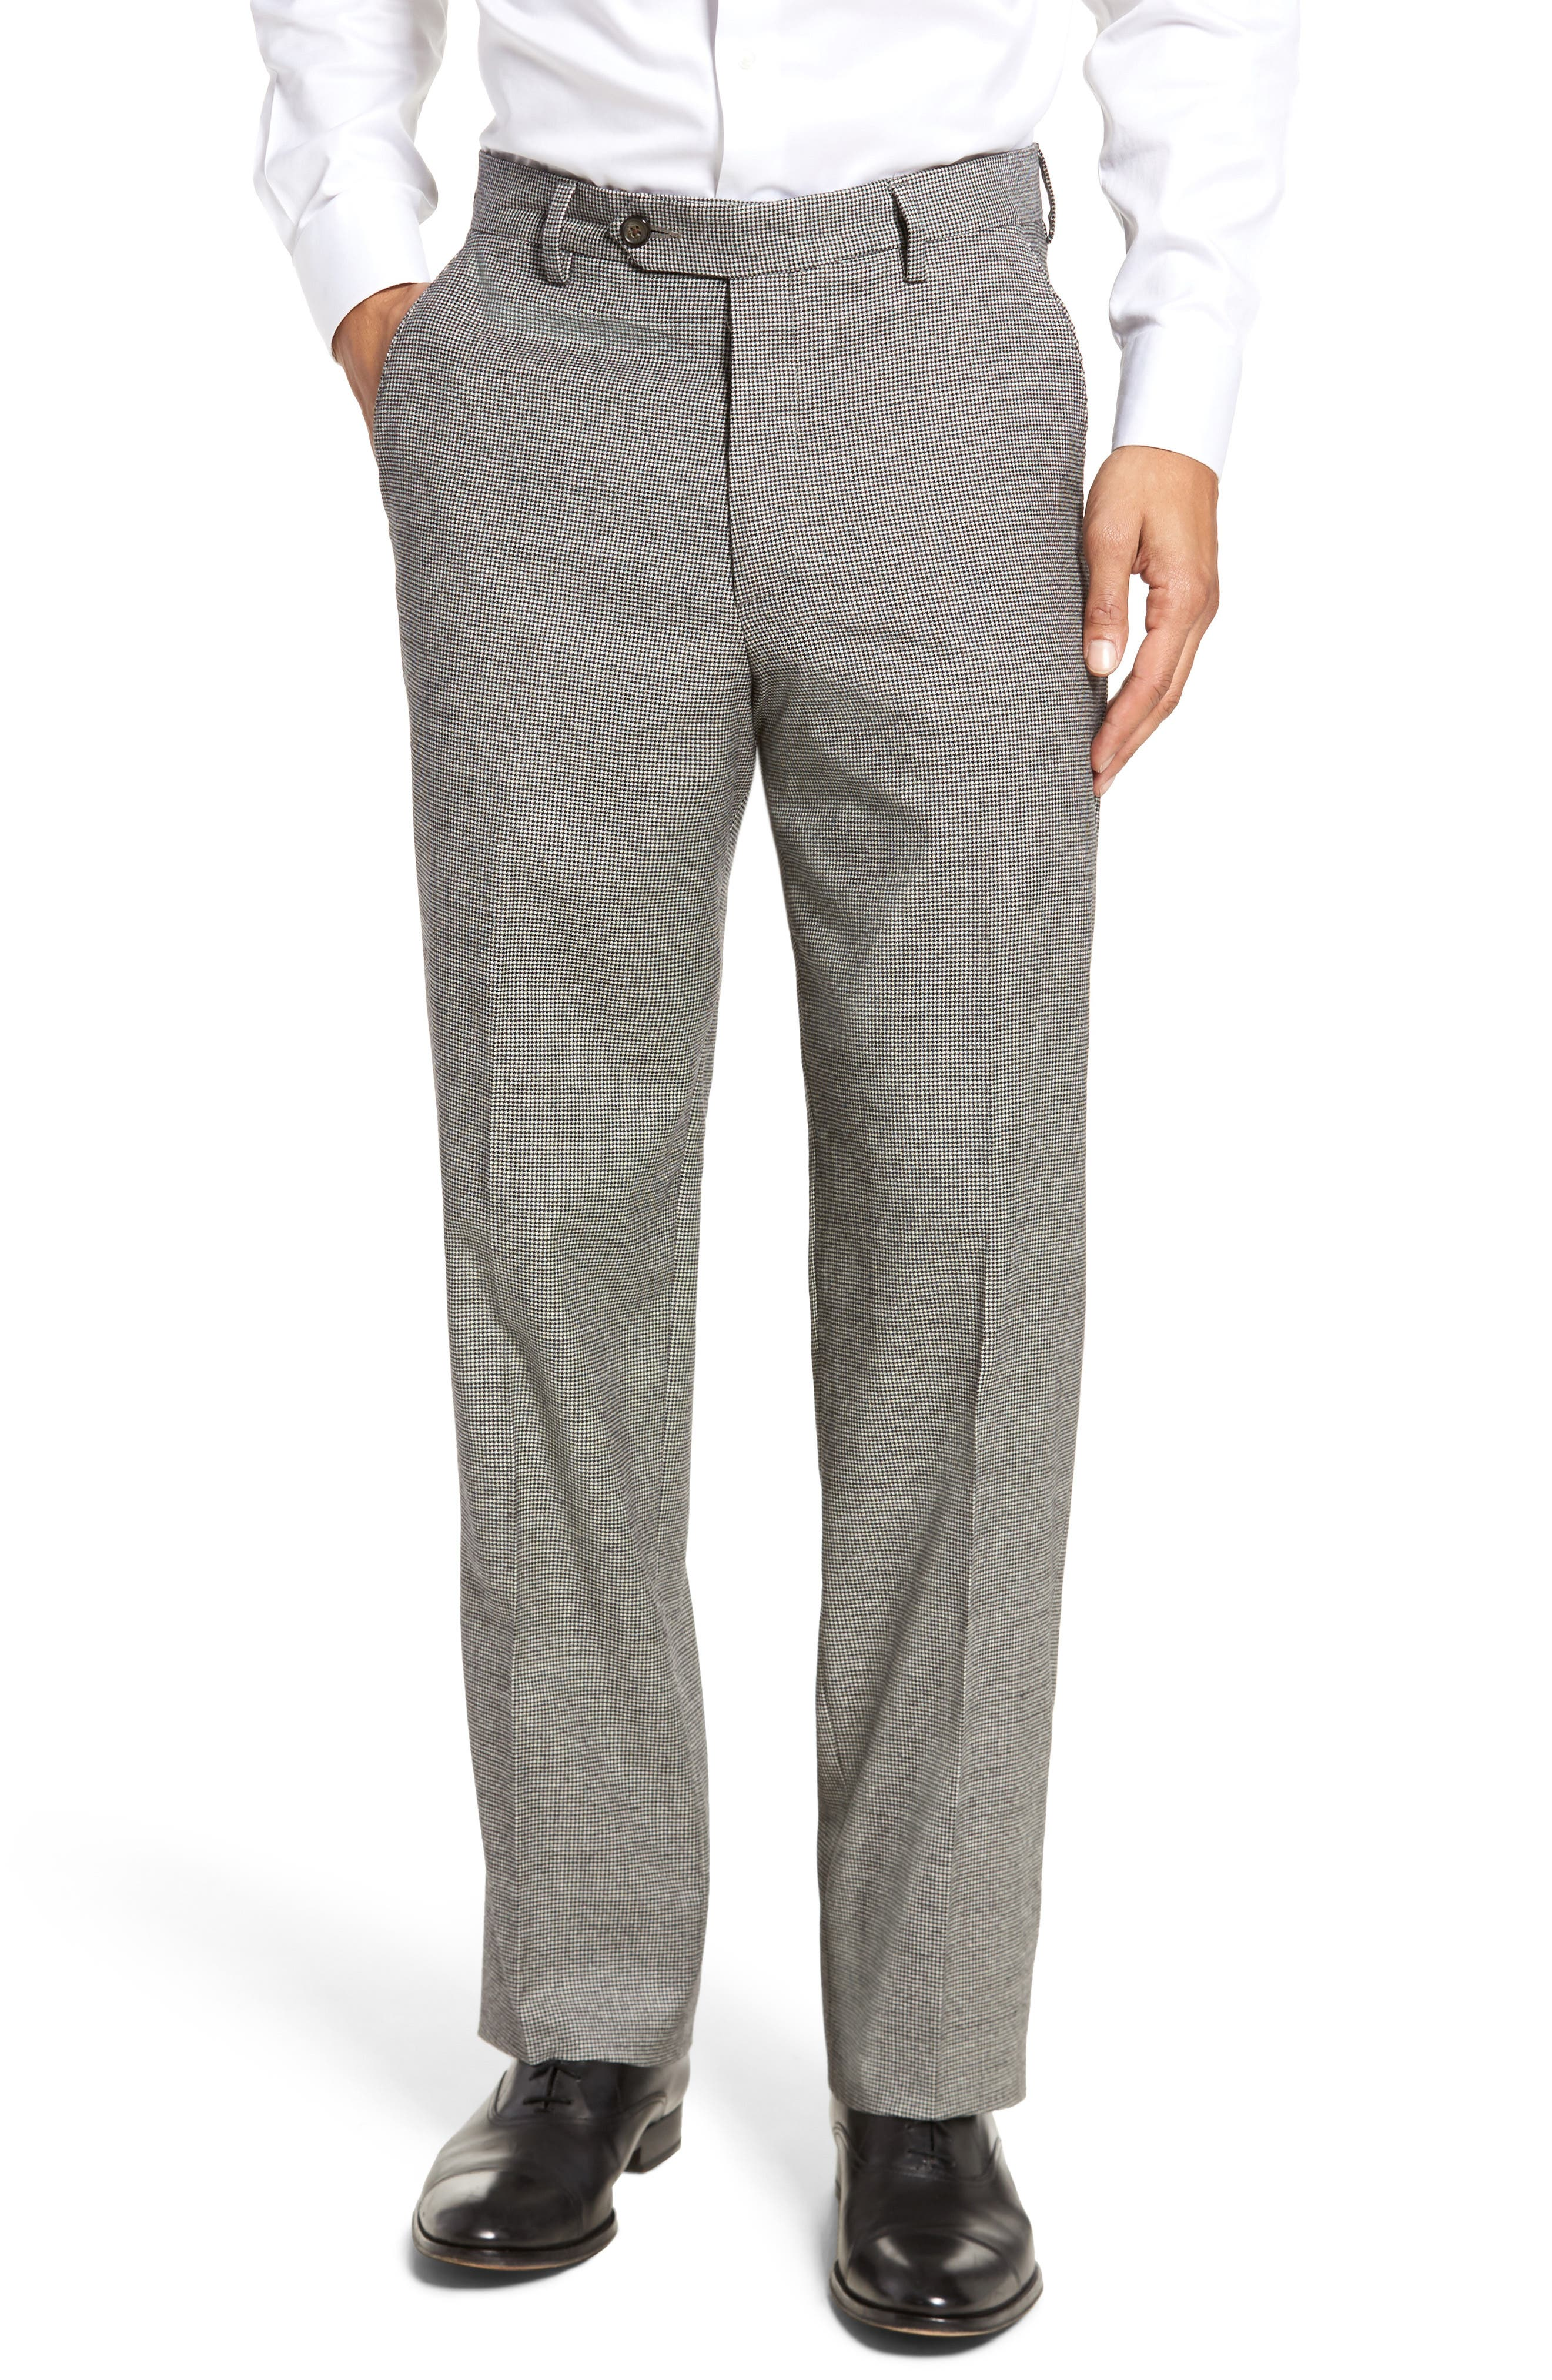 Touch Finish Flat Front Plaid Classic Fit Stretch Houndstooth Dress Pants